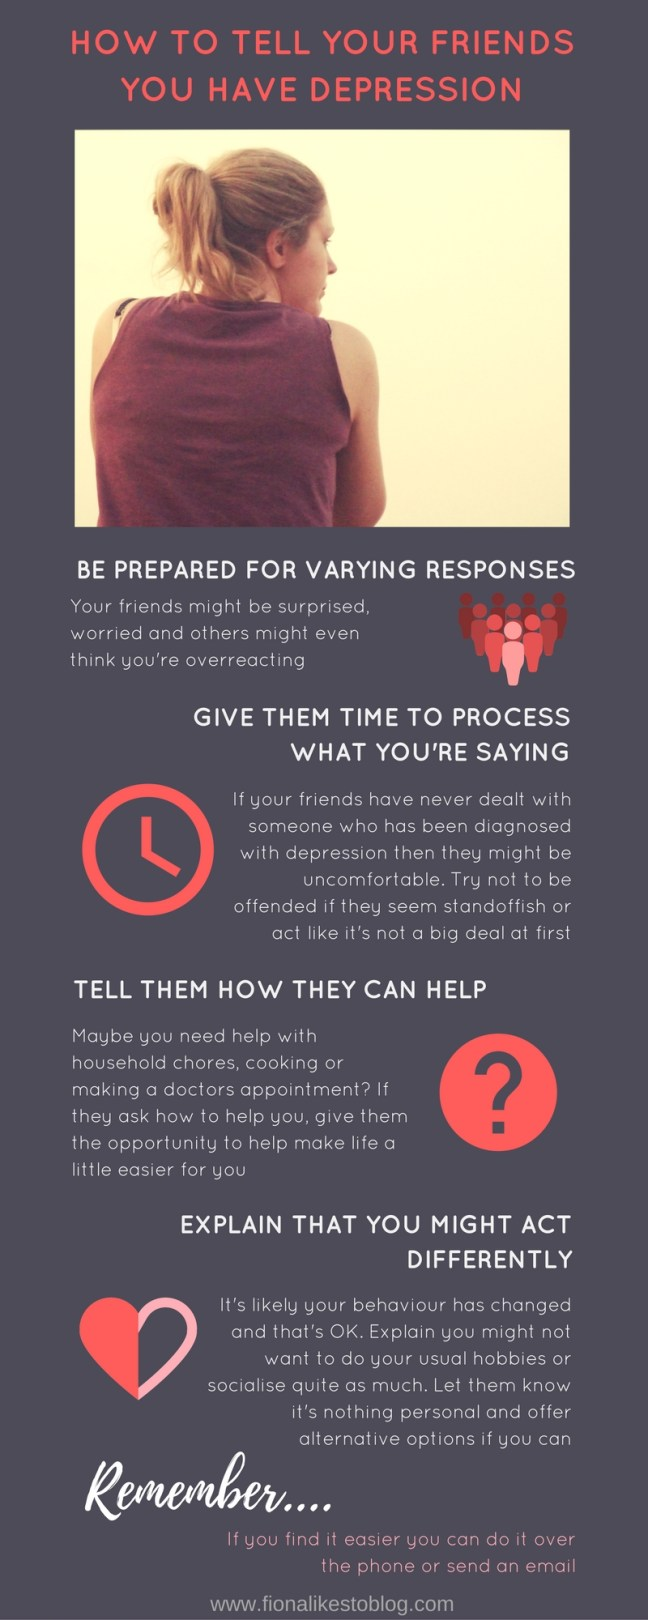 how to tell your friends you have depression mental health